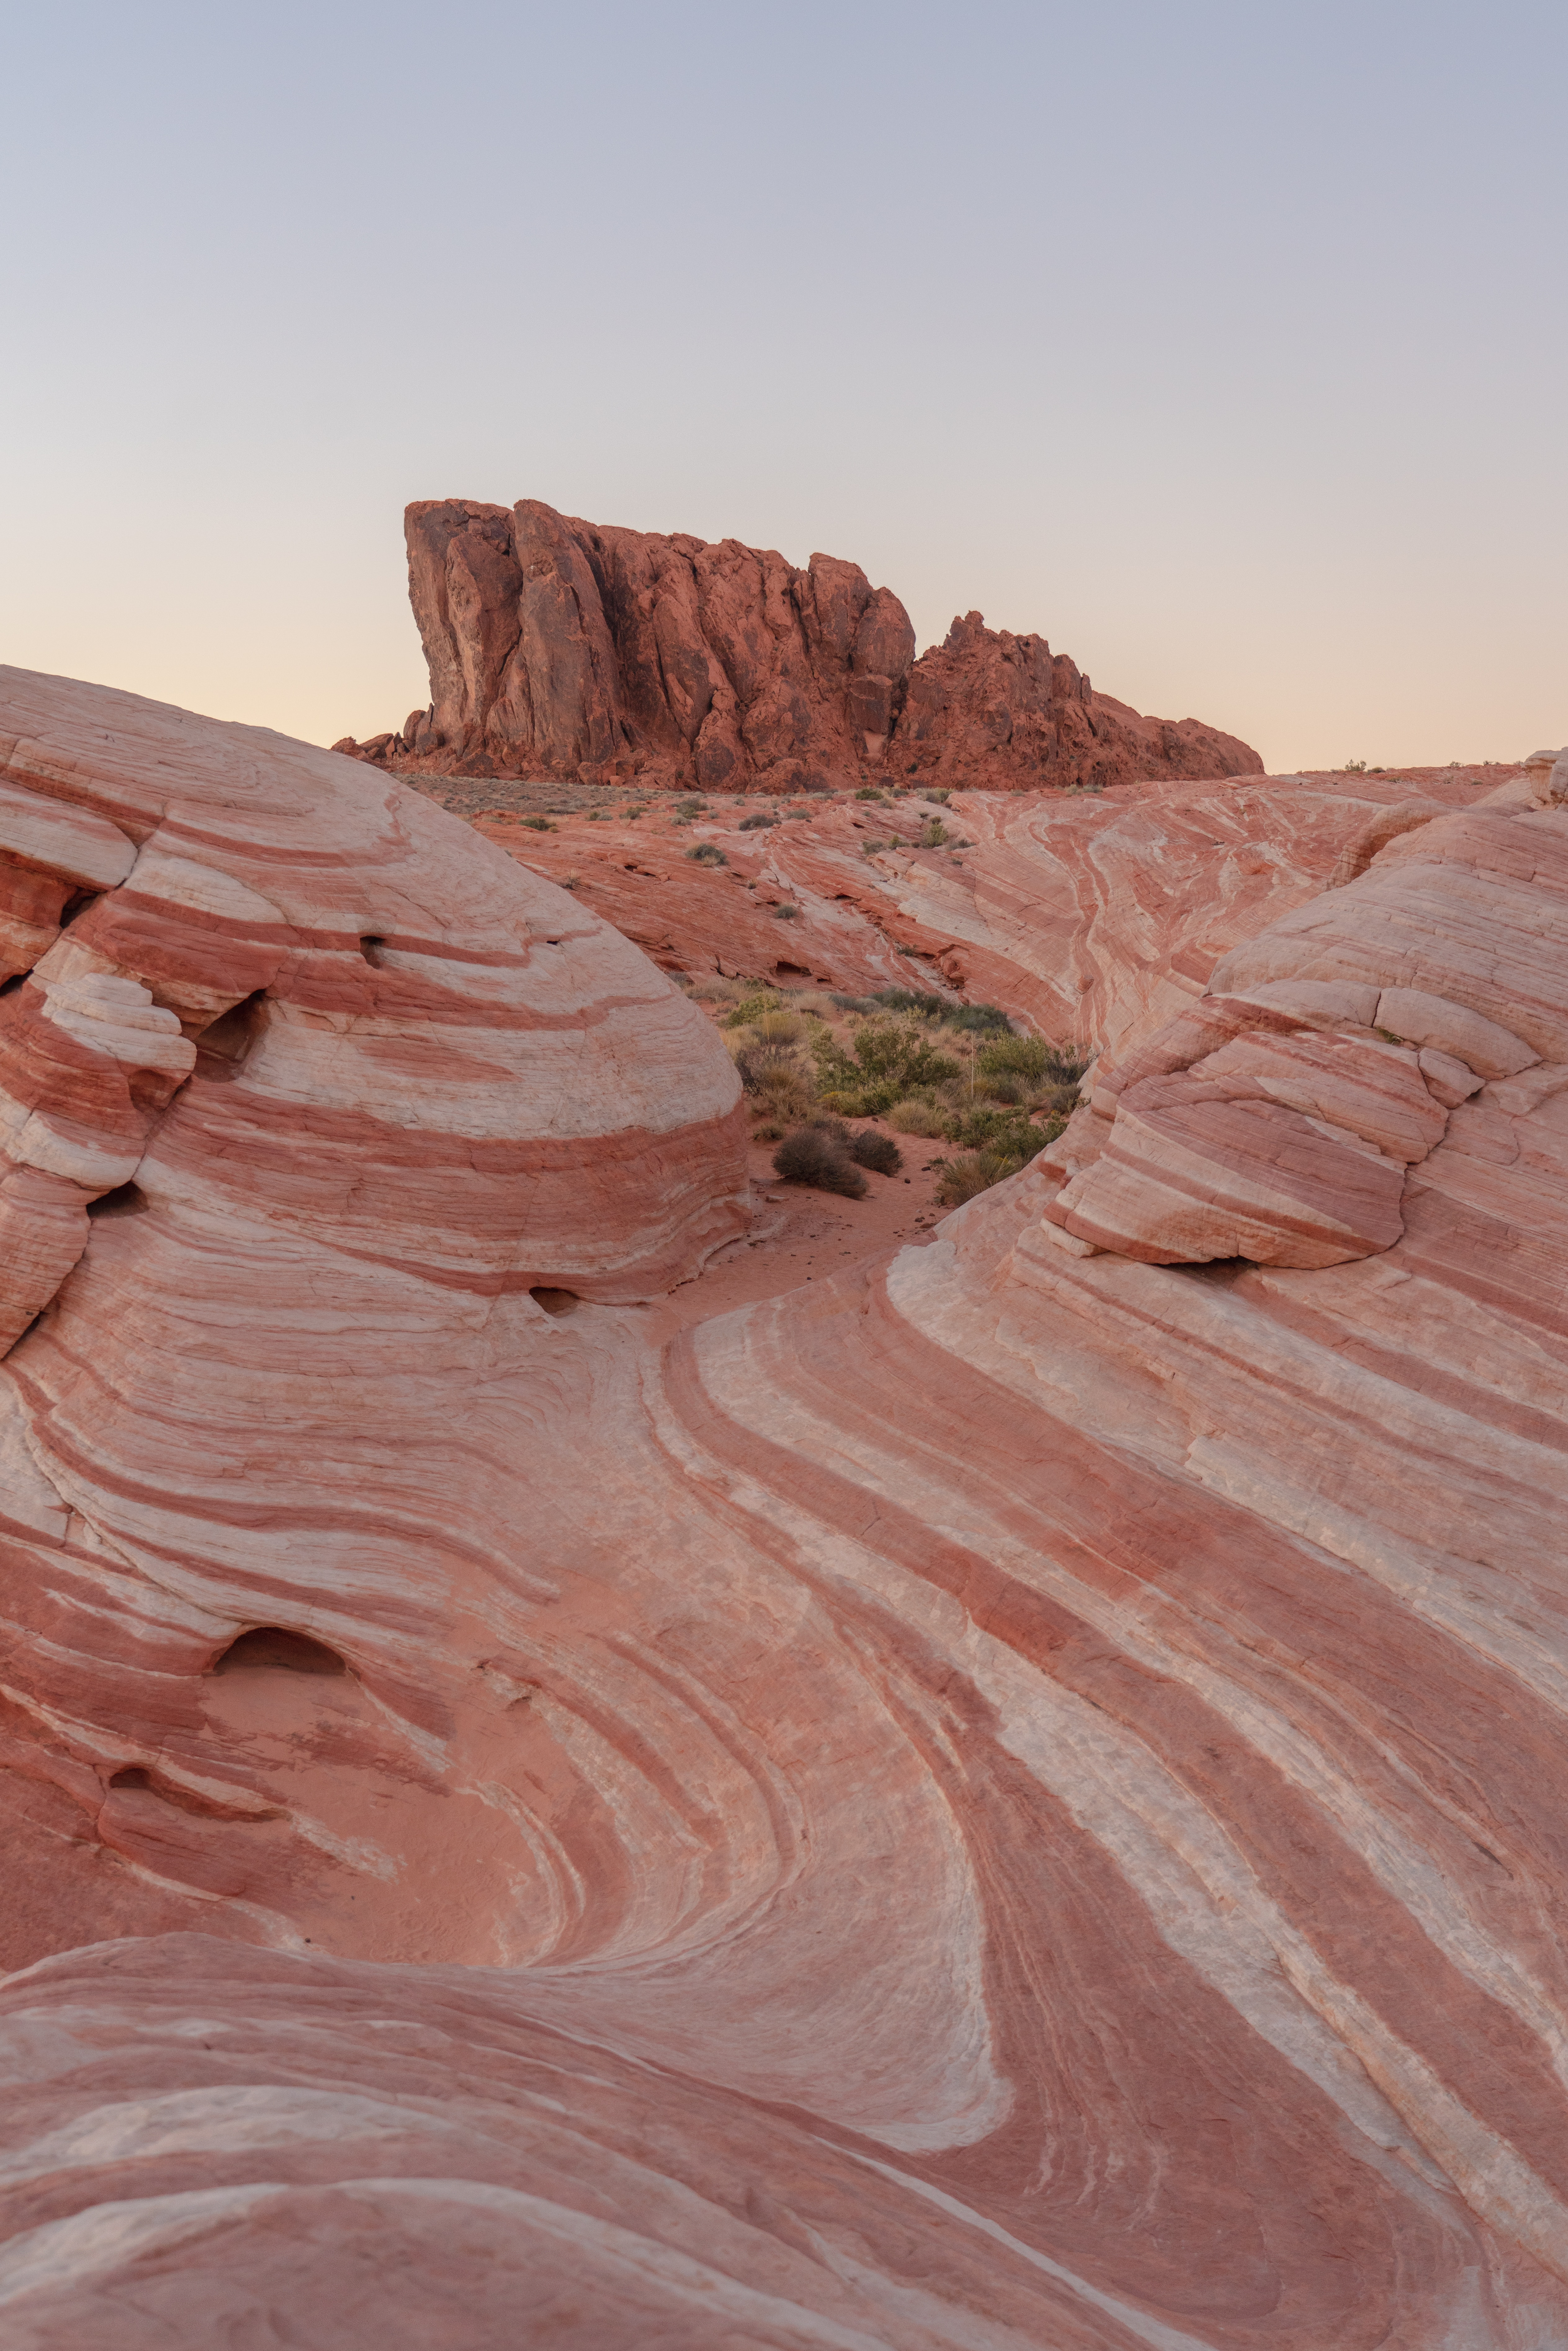 144584 download wallpaper Nature, Canyon, Rocks, Stone, Relief, Mountains screensavers and pictures for free